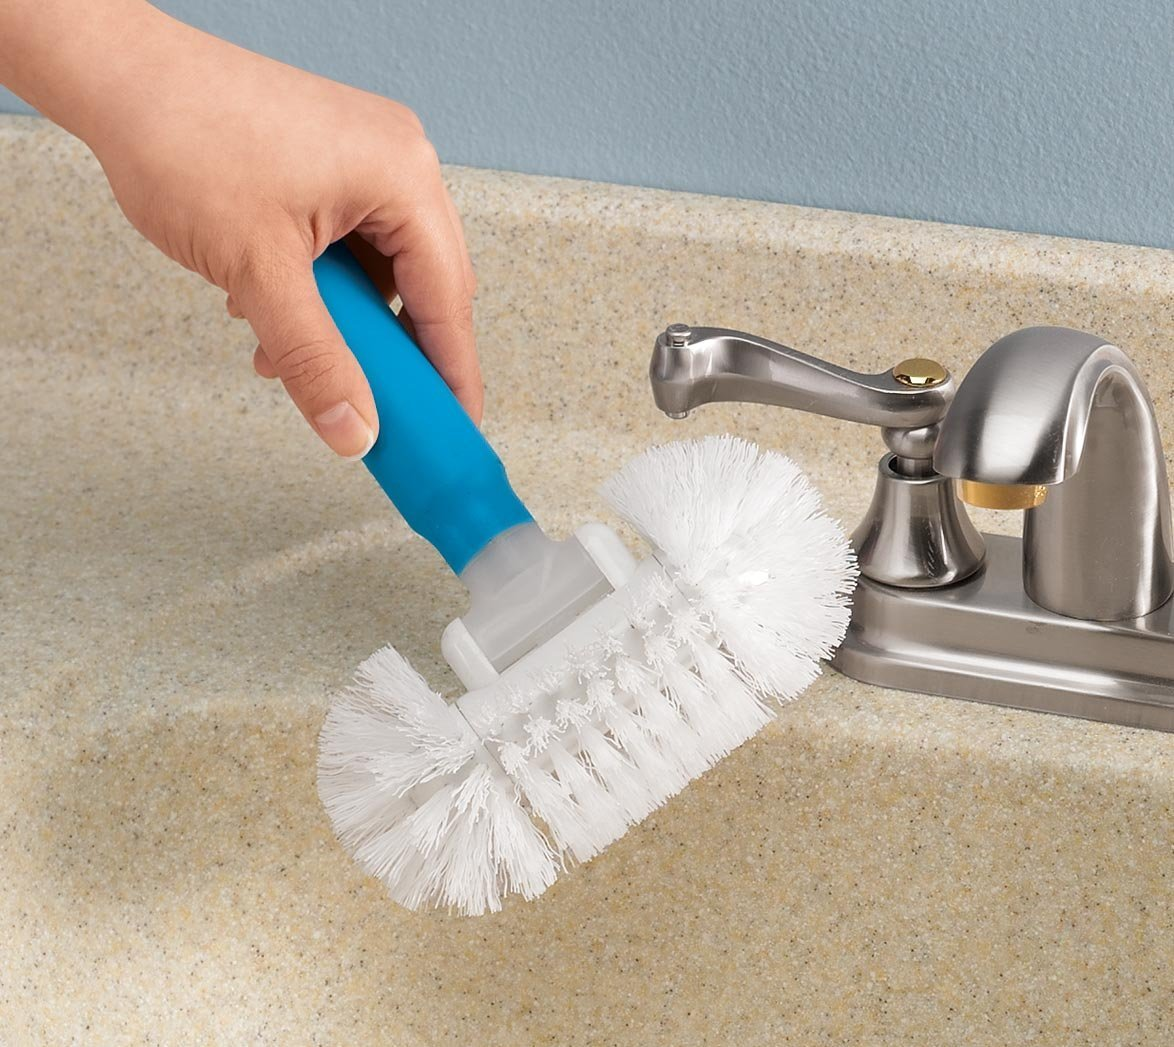 Clean your bathroom with ease without damaging sensitive surfaces